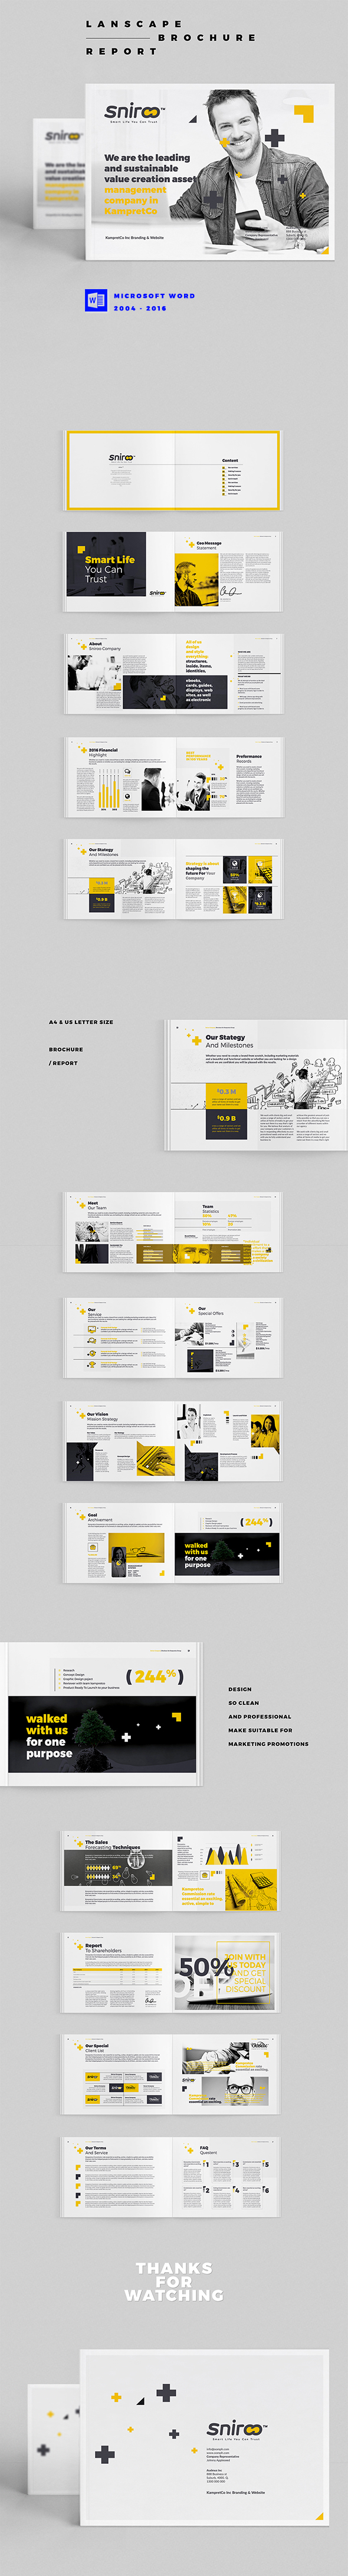 a4, agency, annual report, blue, brochure, business, catalog, clean, company, company profile, corporate, creative, design, elegant, flyer, global, InDesign, marketing, modern, multipurpose, print ready, professional, project, proposal, service, solution, technology, template, unique, us letter